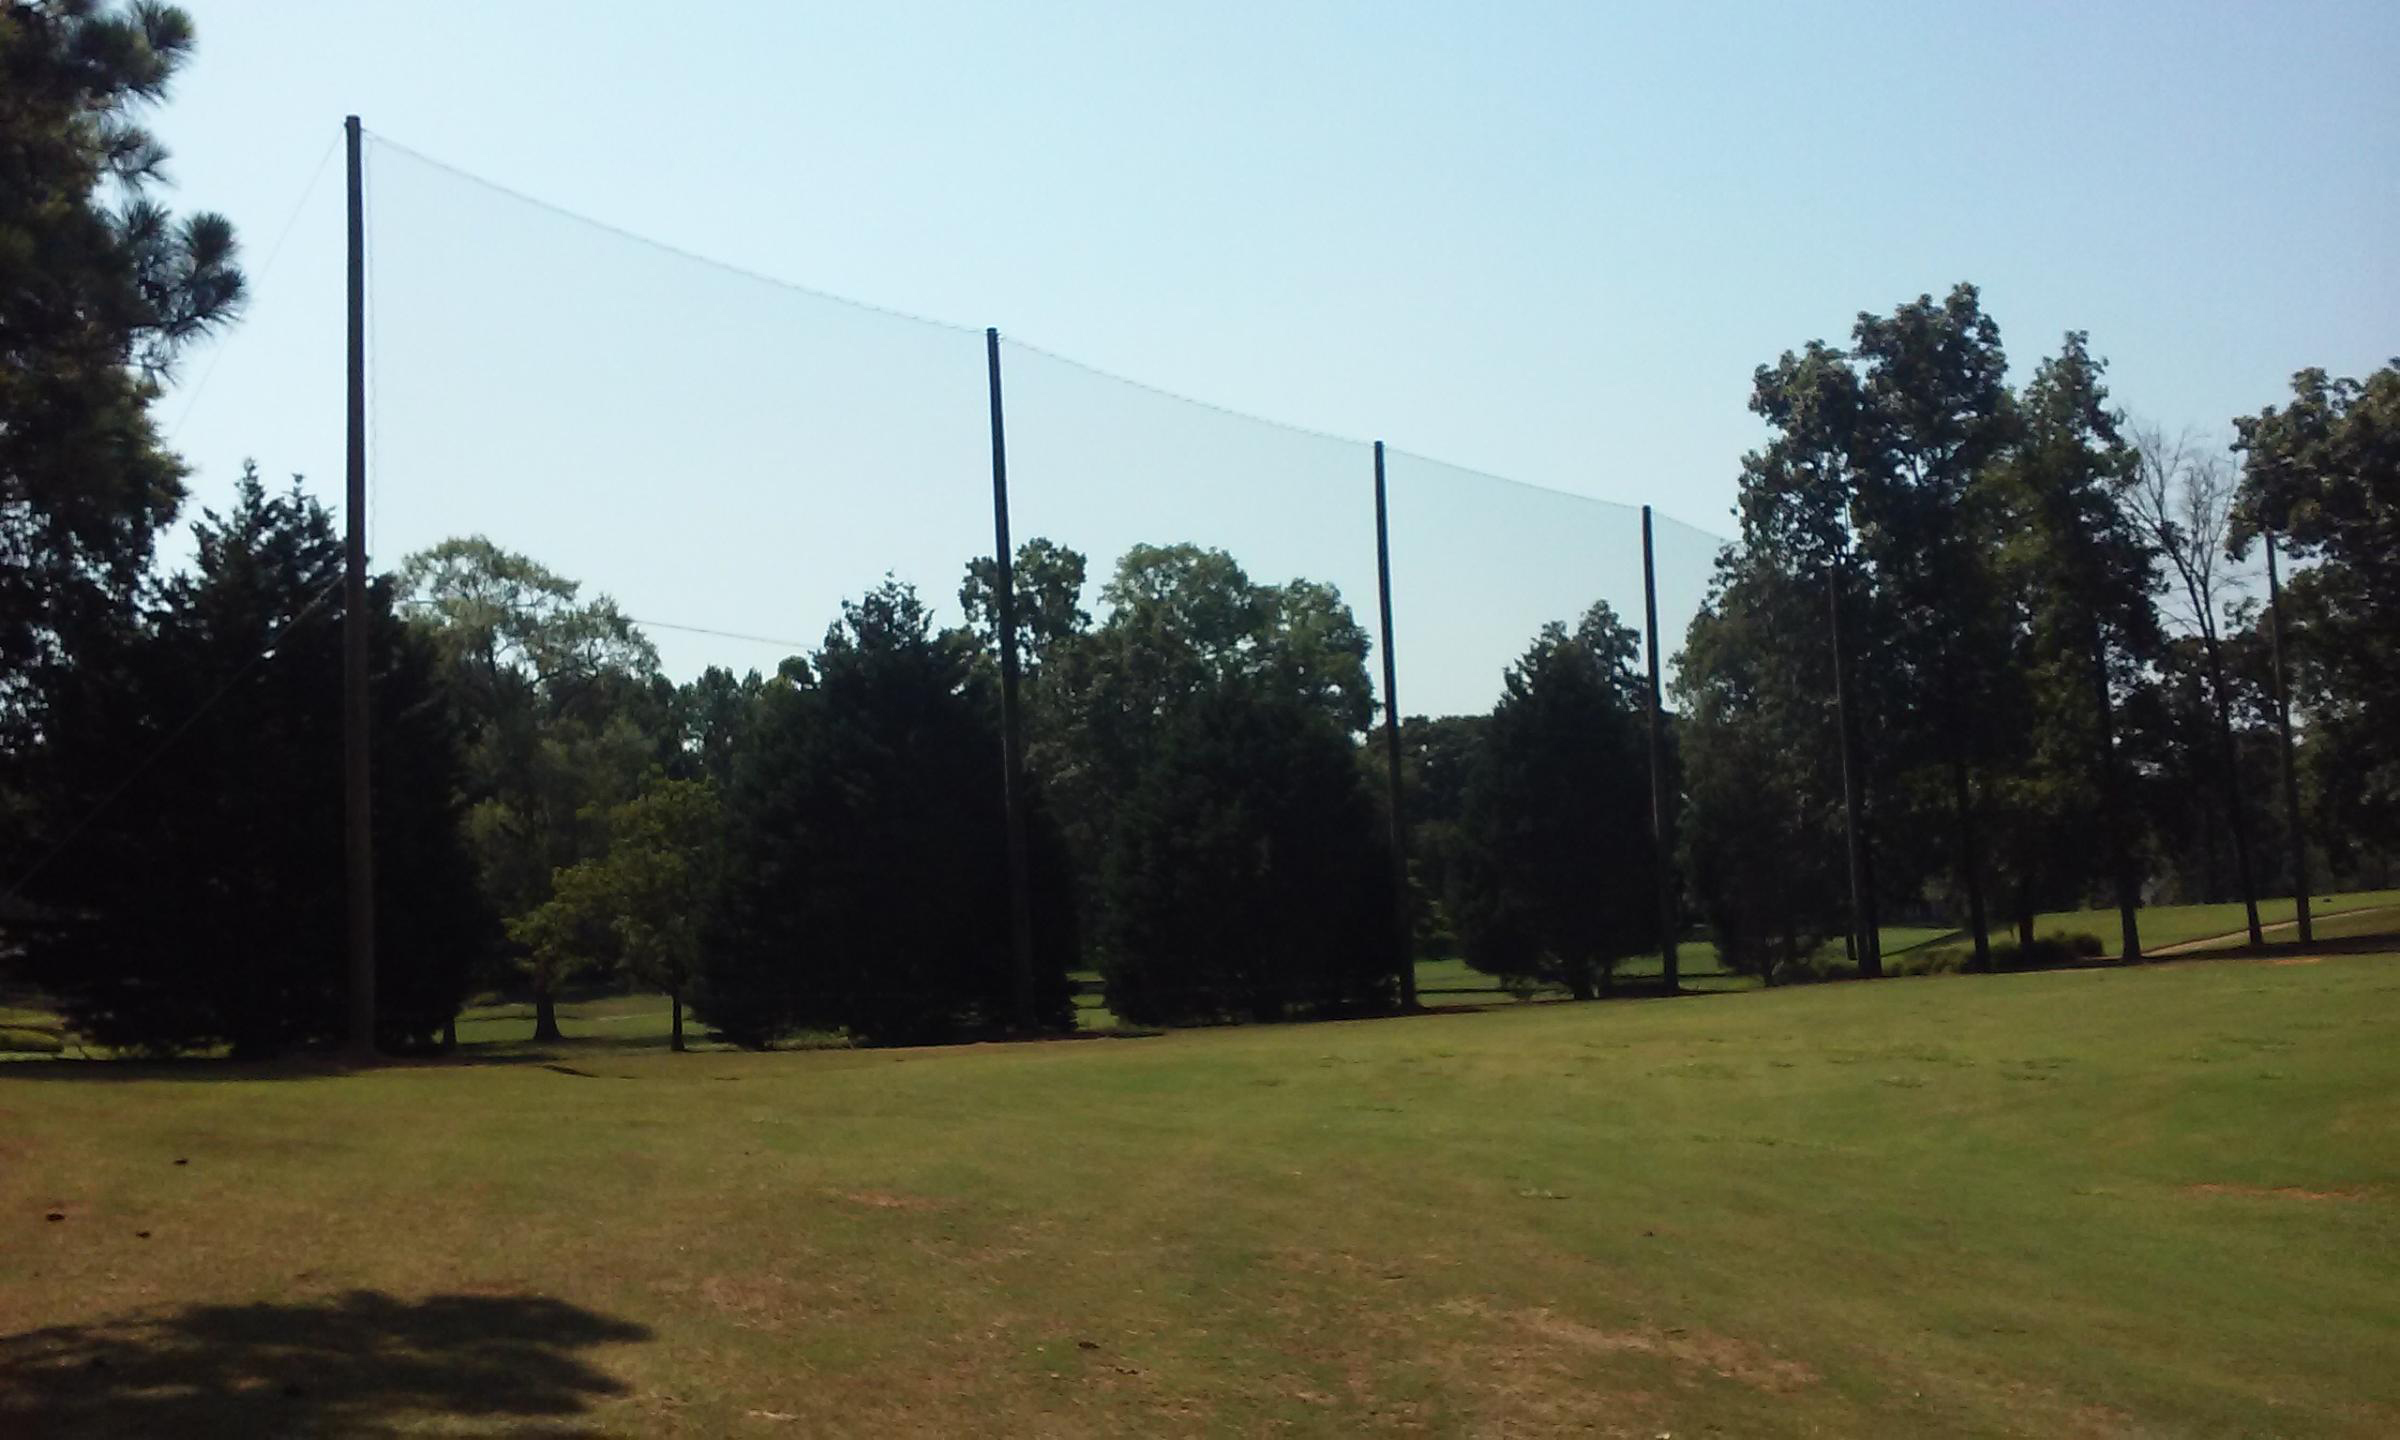 450' x 50' Driving Range Netting